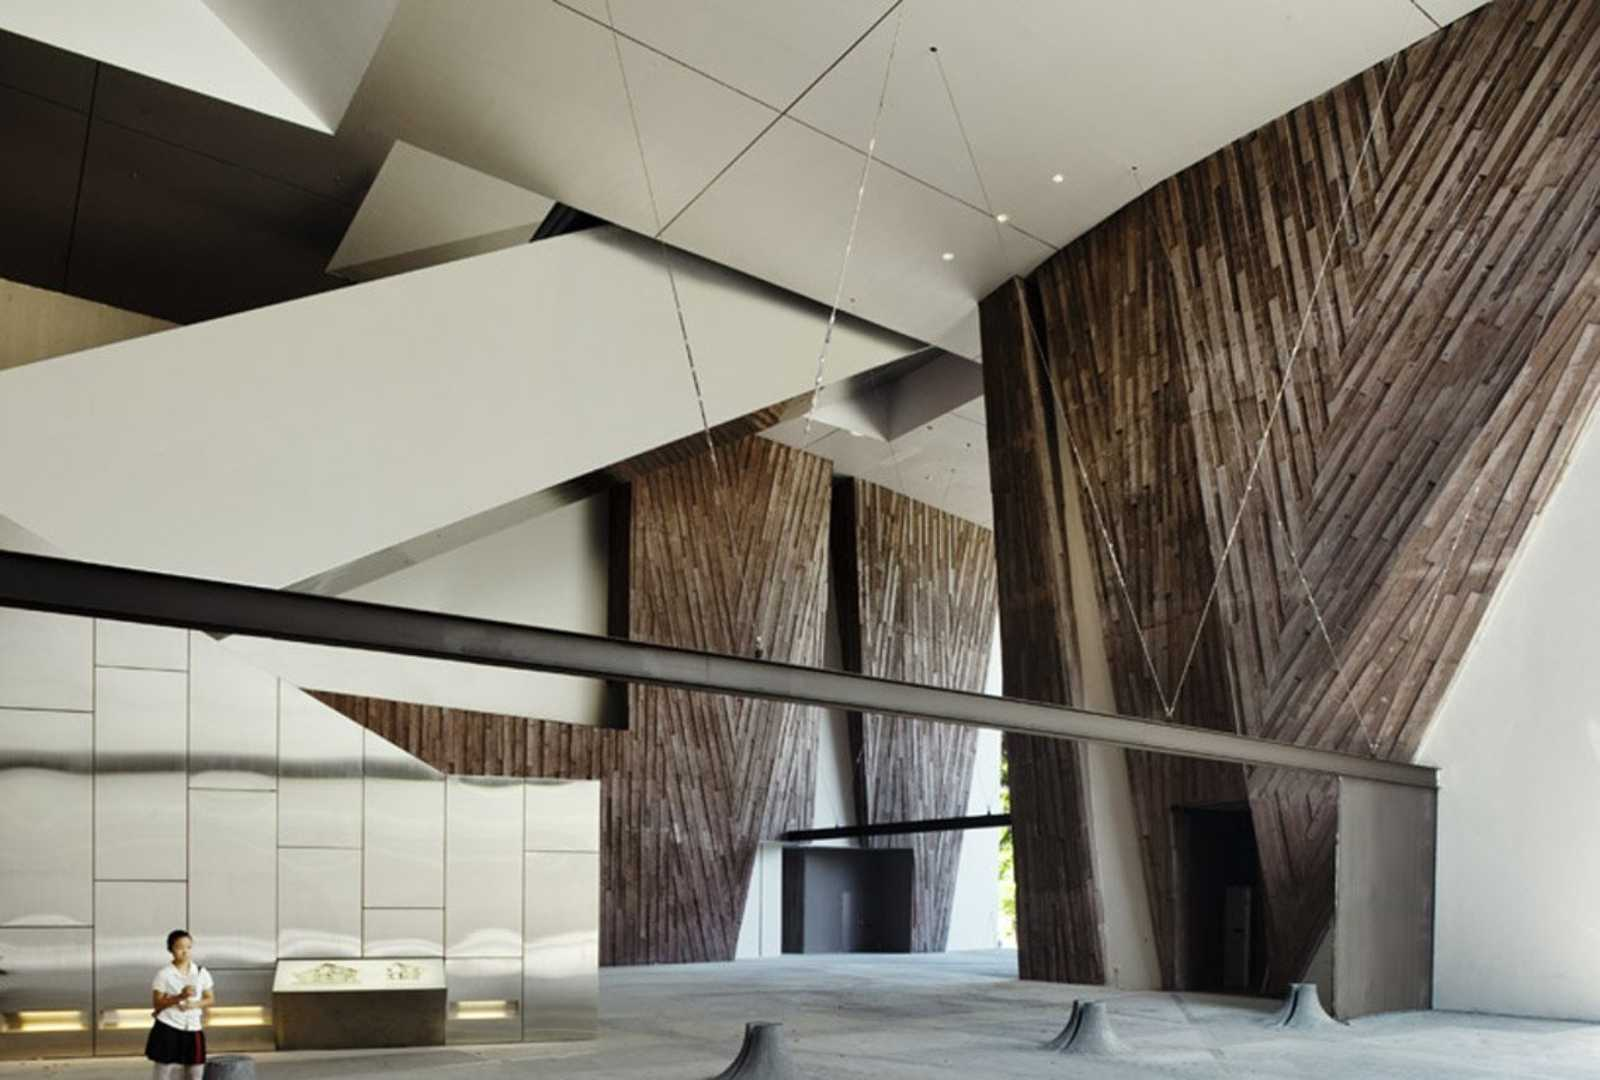 School of the arts by woha for Aik sing interior decoration contractor